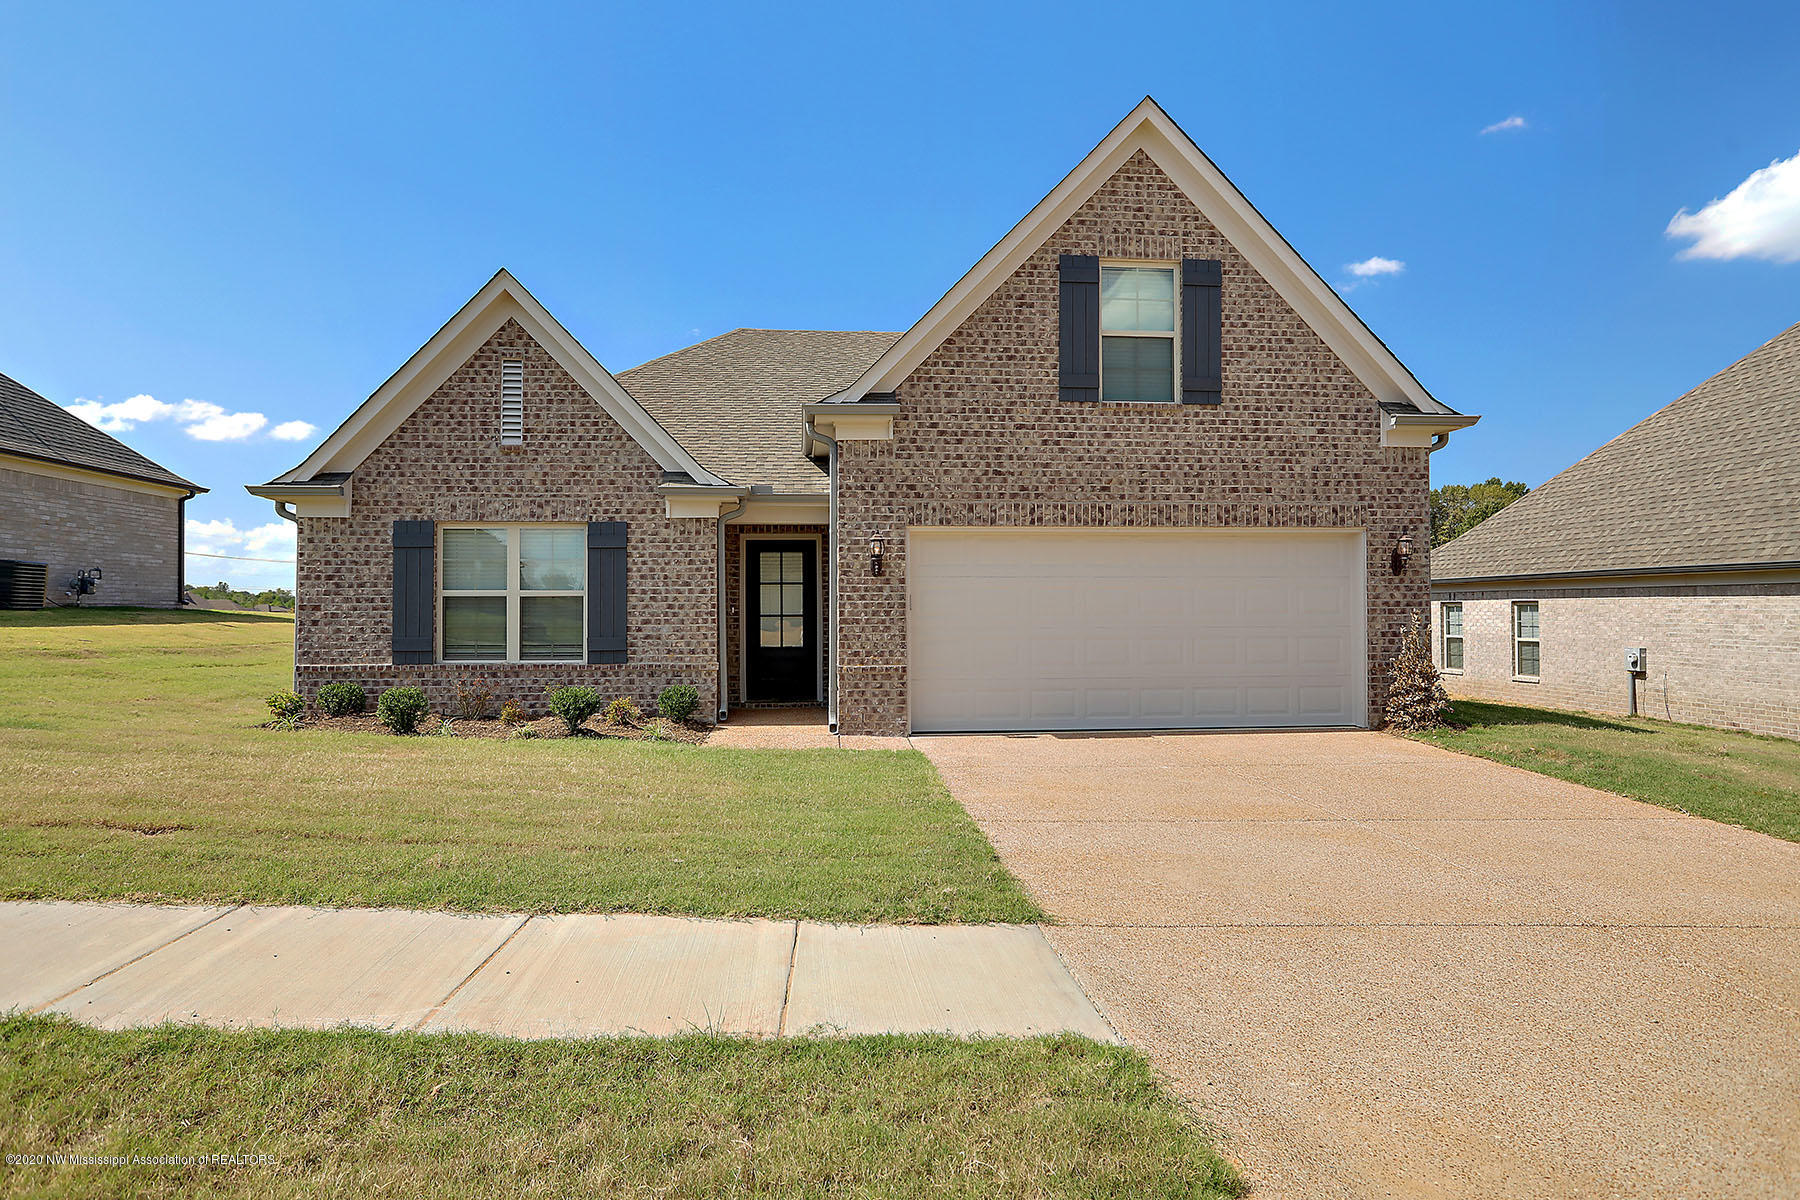 1225 McMillan Drive, Southaven, Mississippi